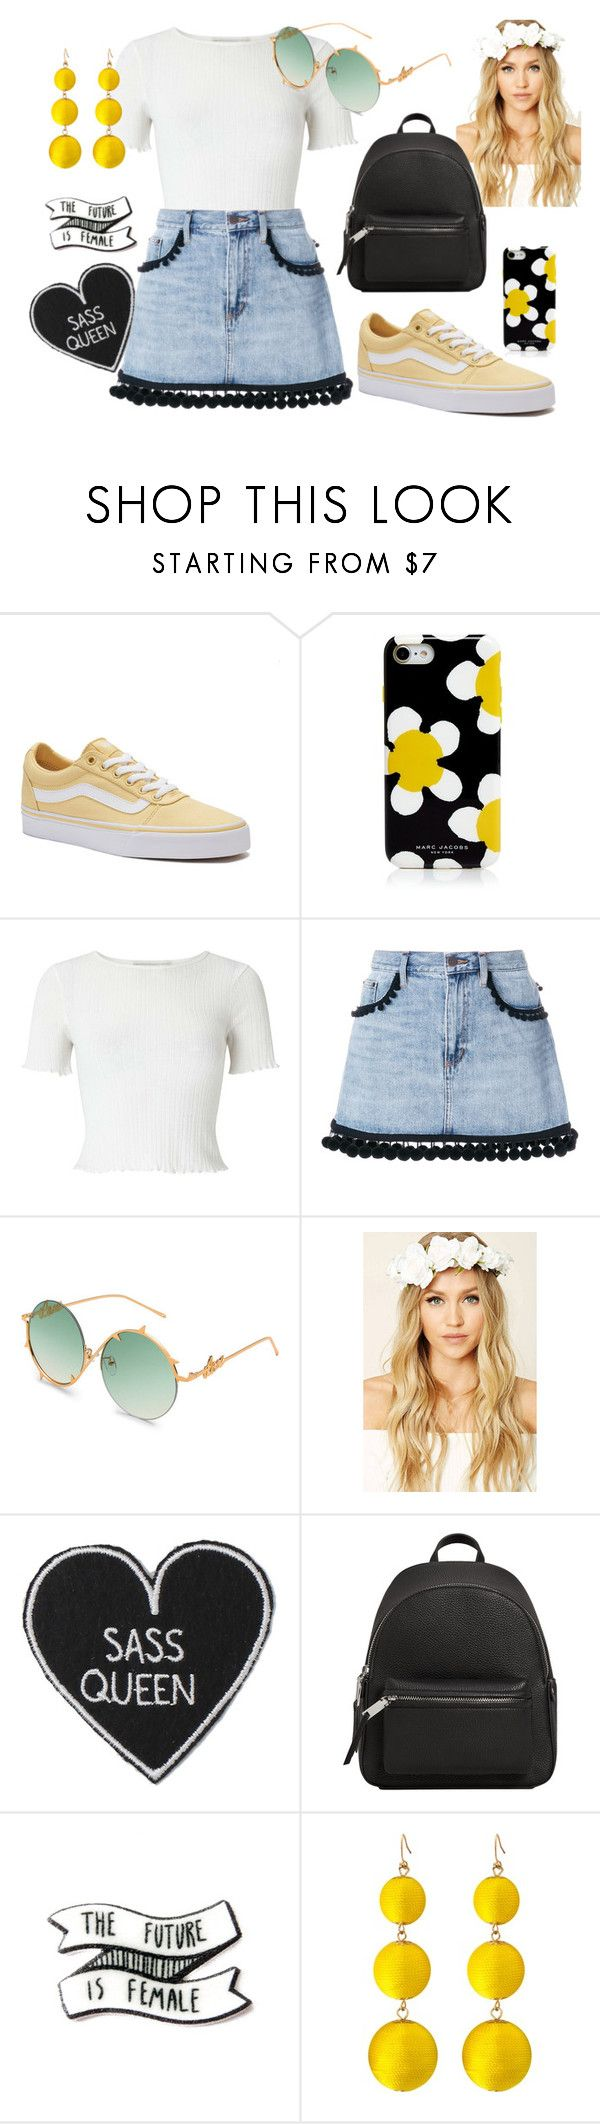 """Summers Day"" by chalotteleah on Polyvore featuring Vans, Marc Jacobs, Miss Selfridge, Forever 21 and MANGO"